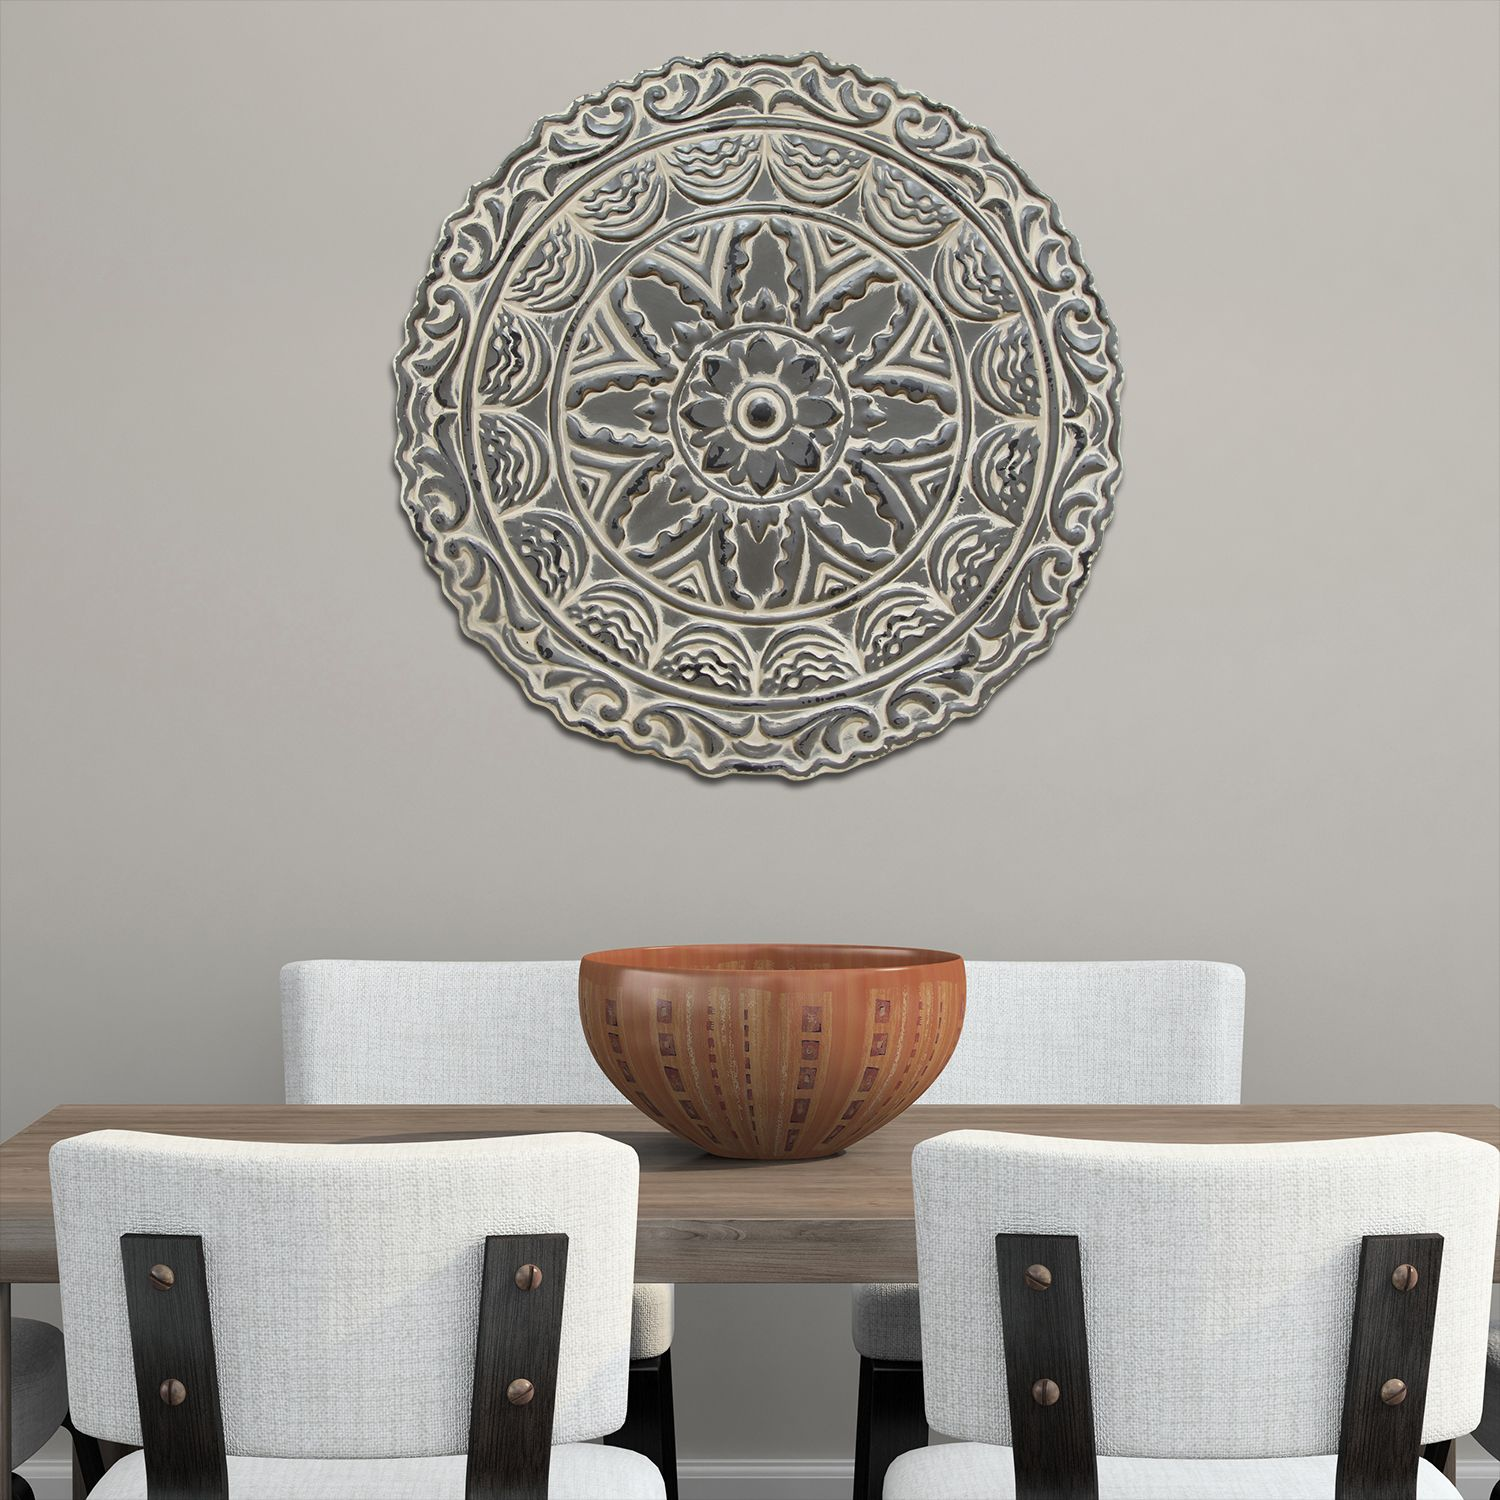 Ordinaire Stratton Home Decor Medallion Metal Wall Decor